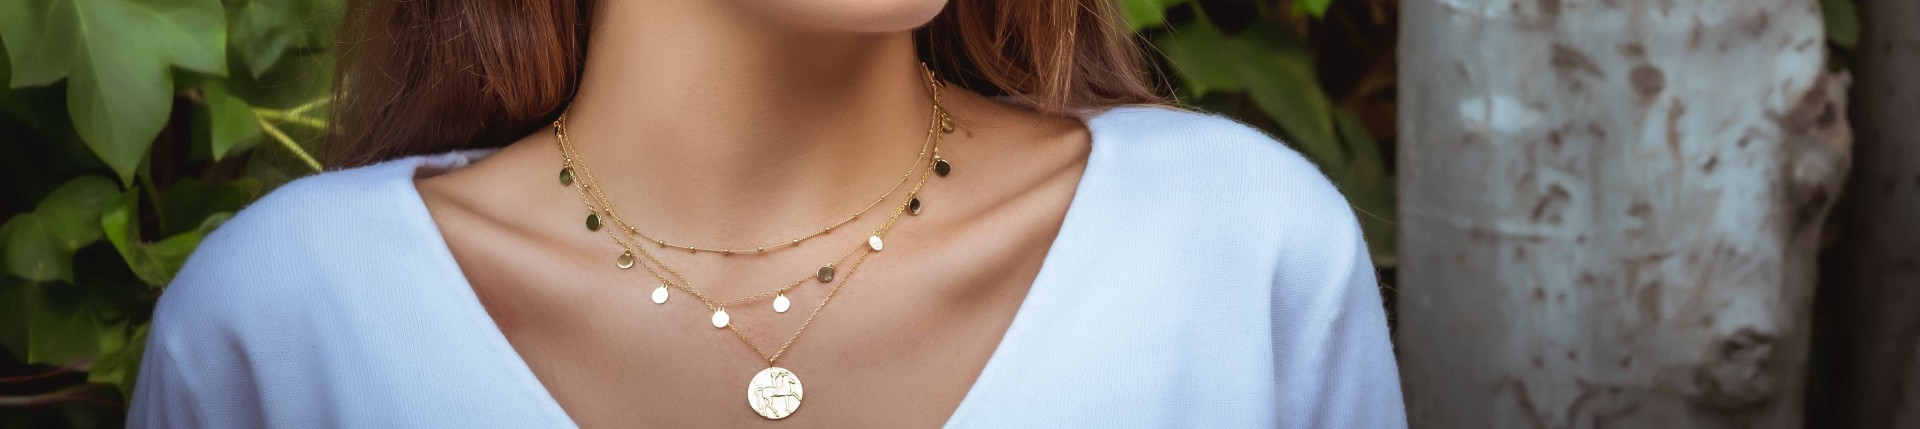 Necklaces in gold